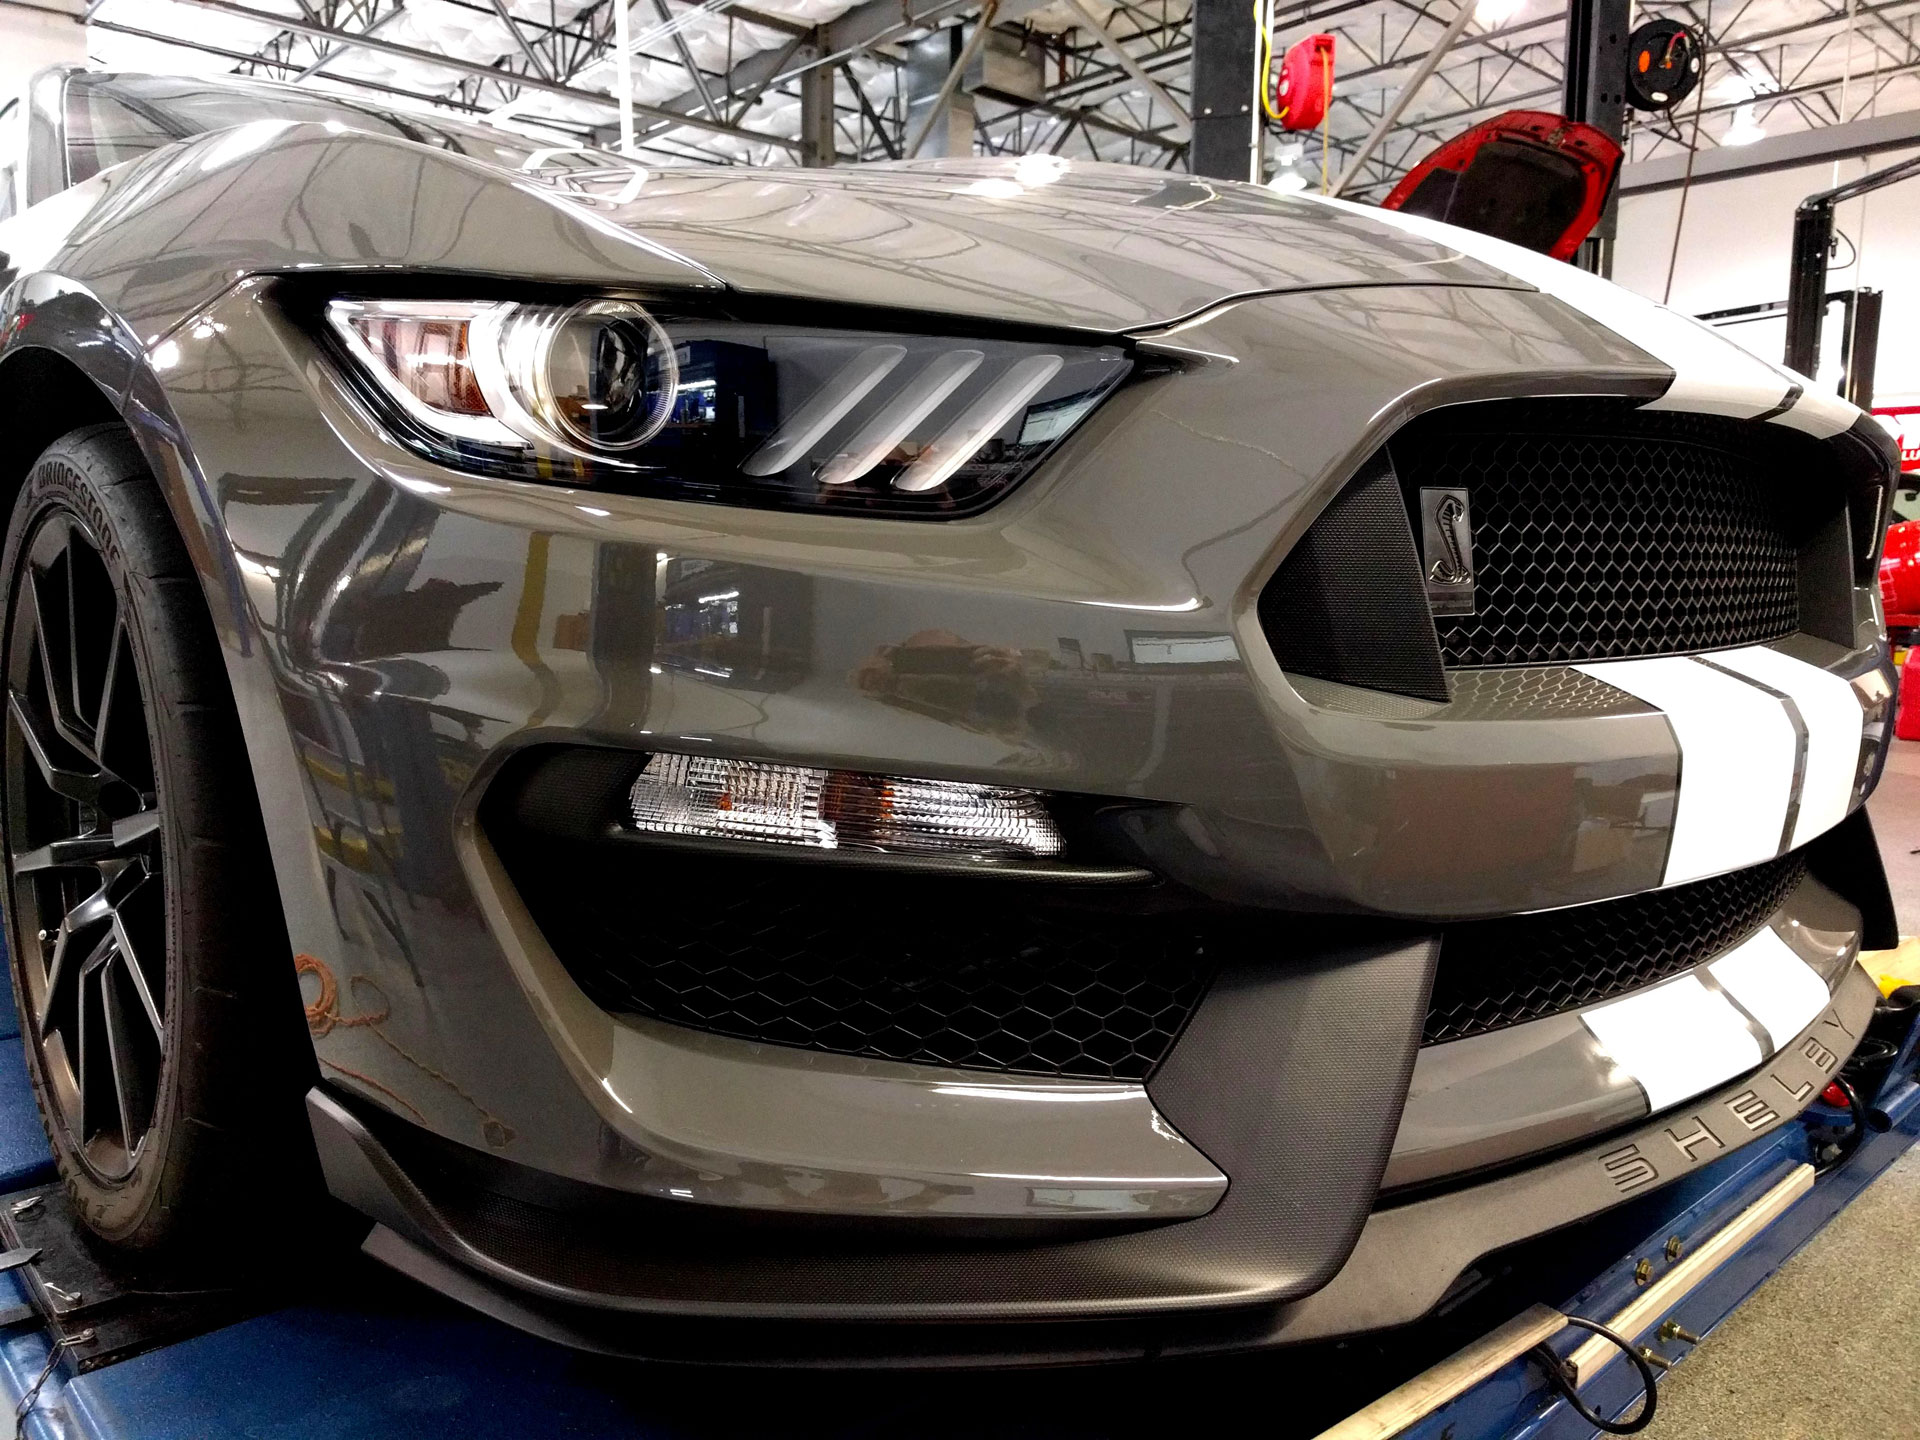 Ford Shelby GT350 Level 3 Paint Protection 3M Scotchgard Pro Series Clear Bra